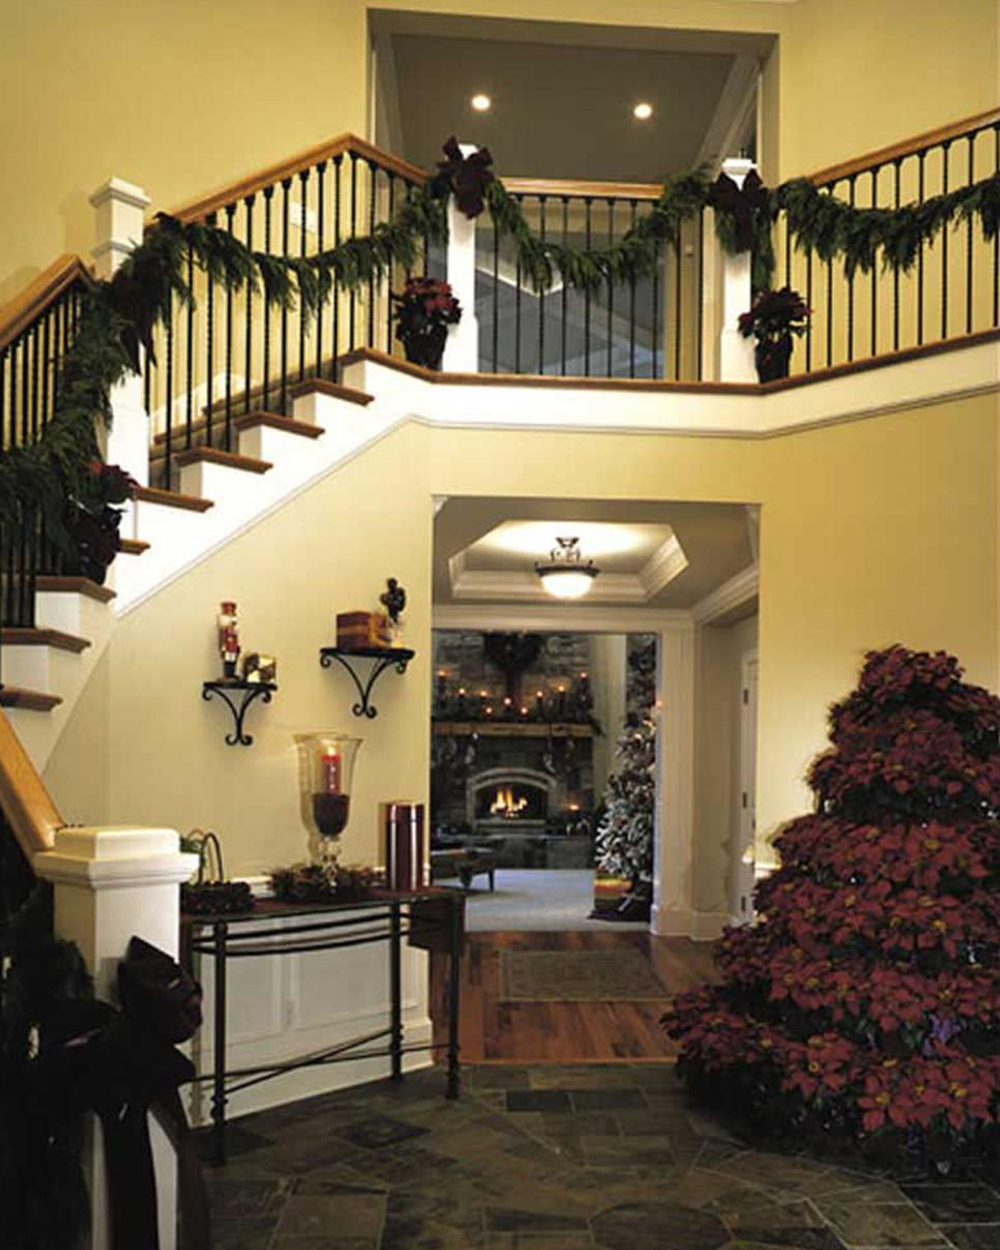 Foyer with tree made of poinsettias.